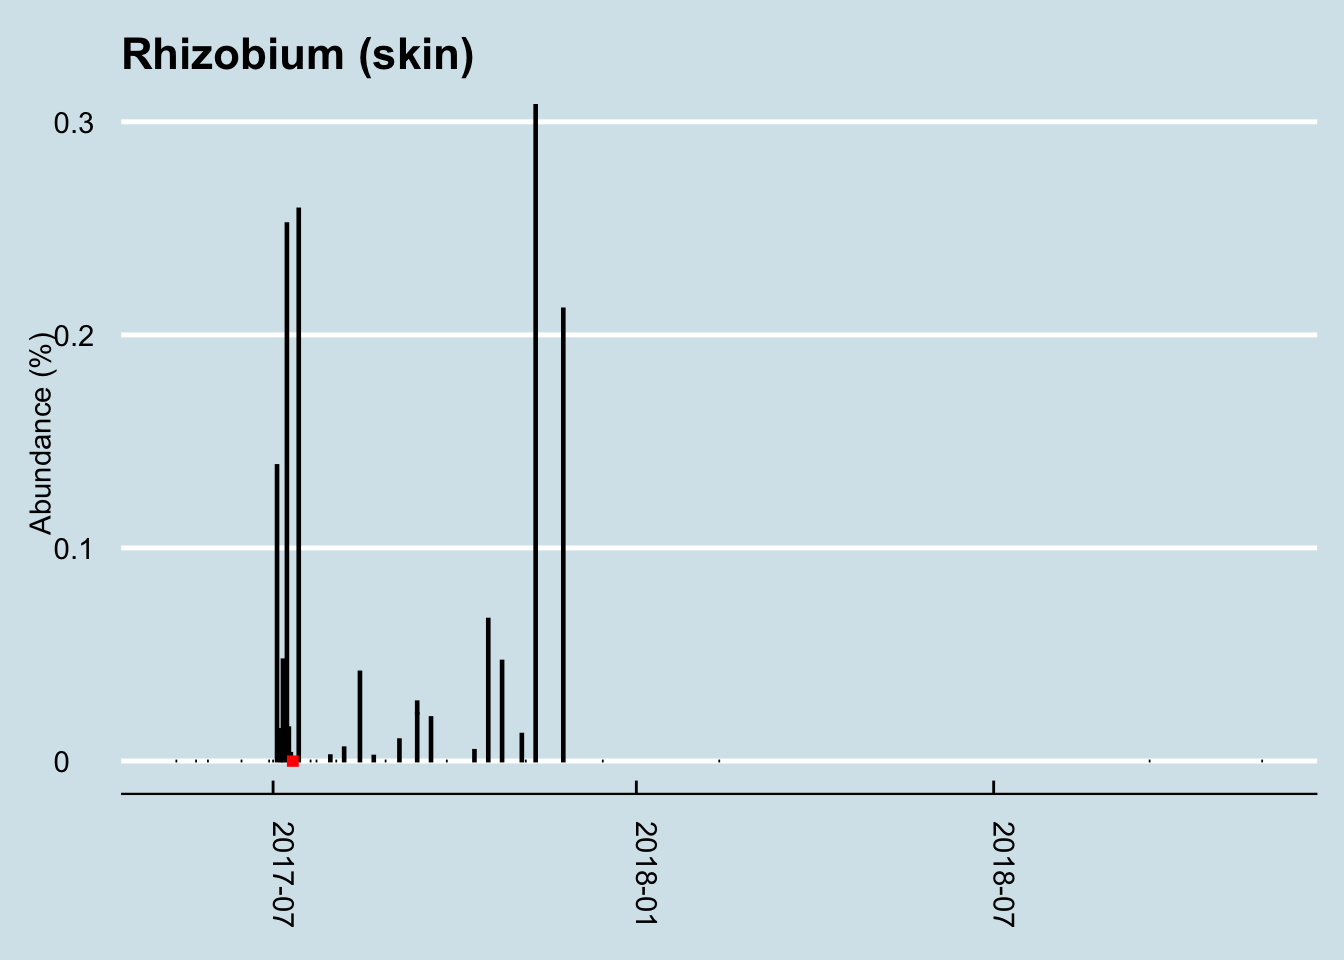 Long-term abundance of Rhizobium in my skin microbiome. Red line indicates the period of traveling to China.